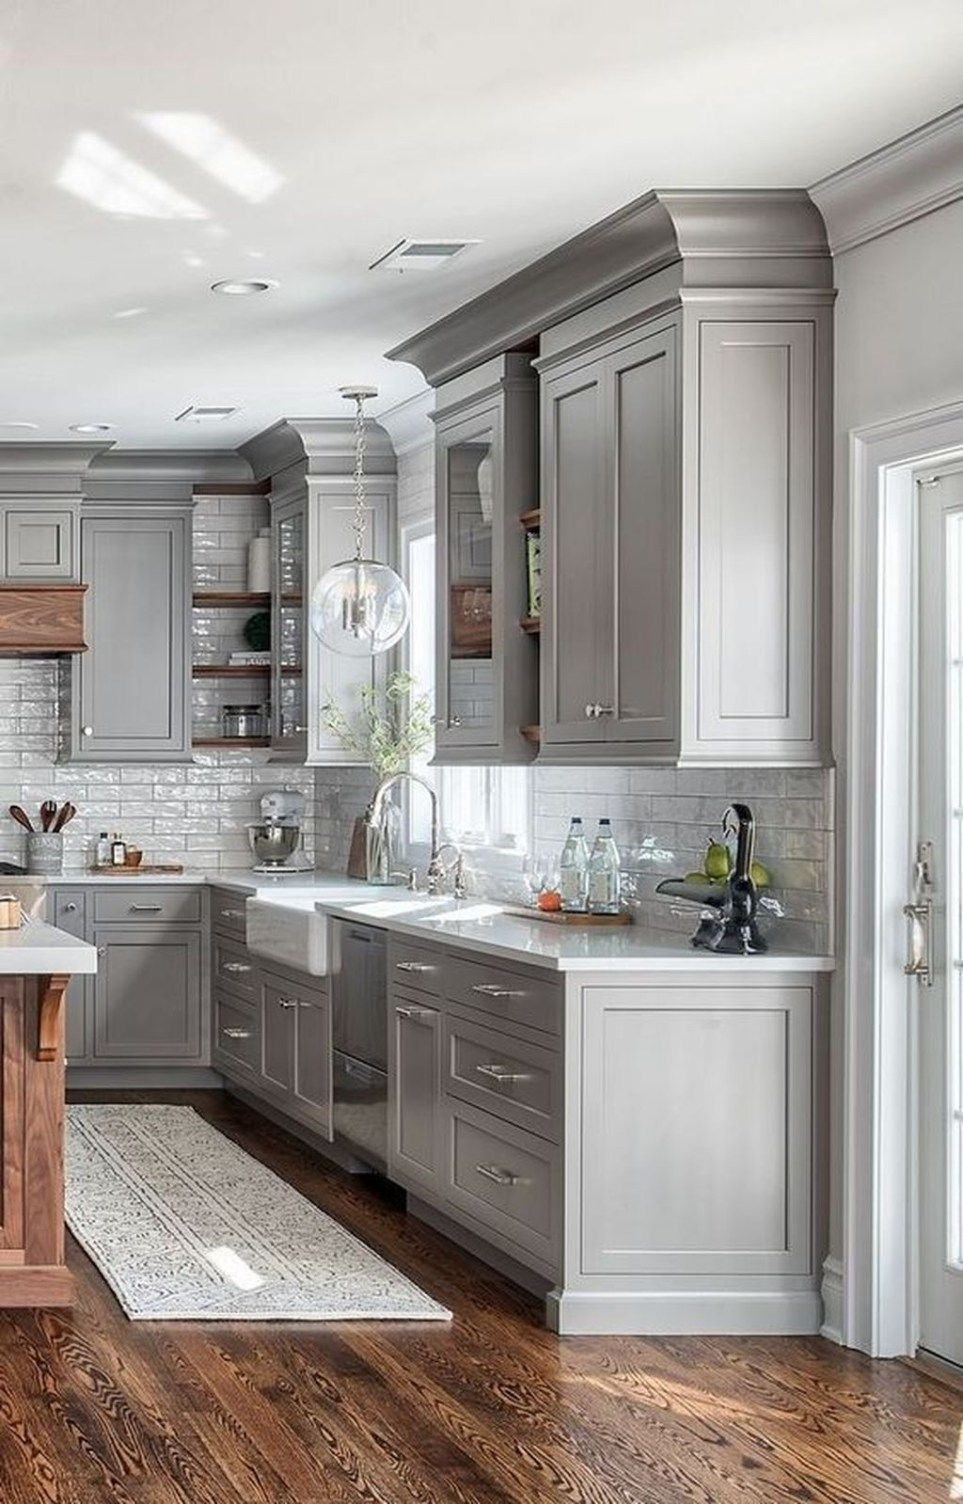 34 Luxury Farmhouse Kitchen Design Ideas To Bring Modern Look Kitchen Cabinet Styles Kitchen Renovation Cost Kitchen Cabinet Design